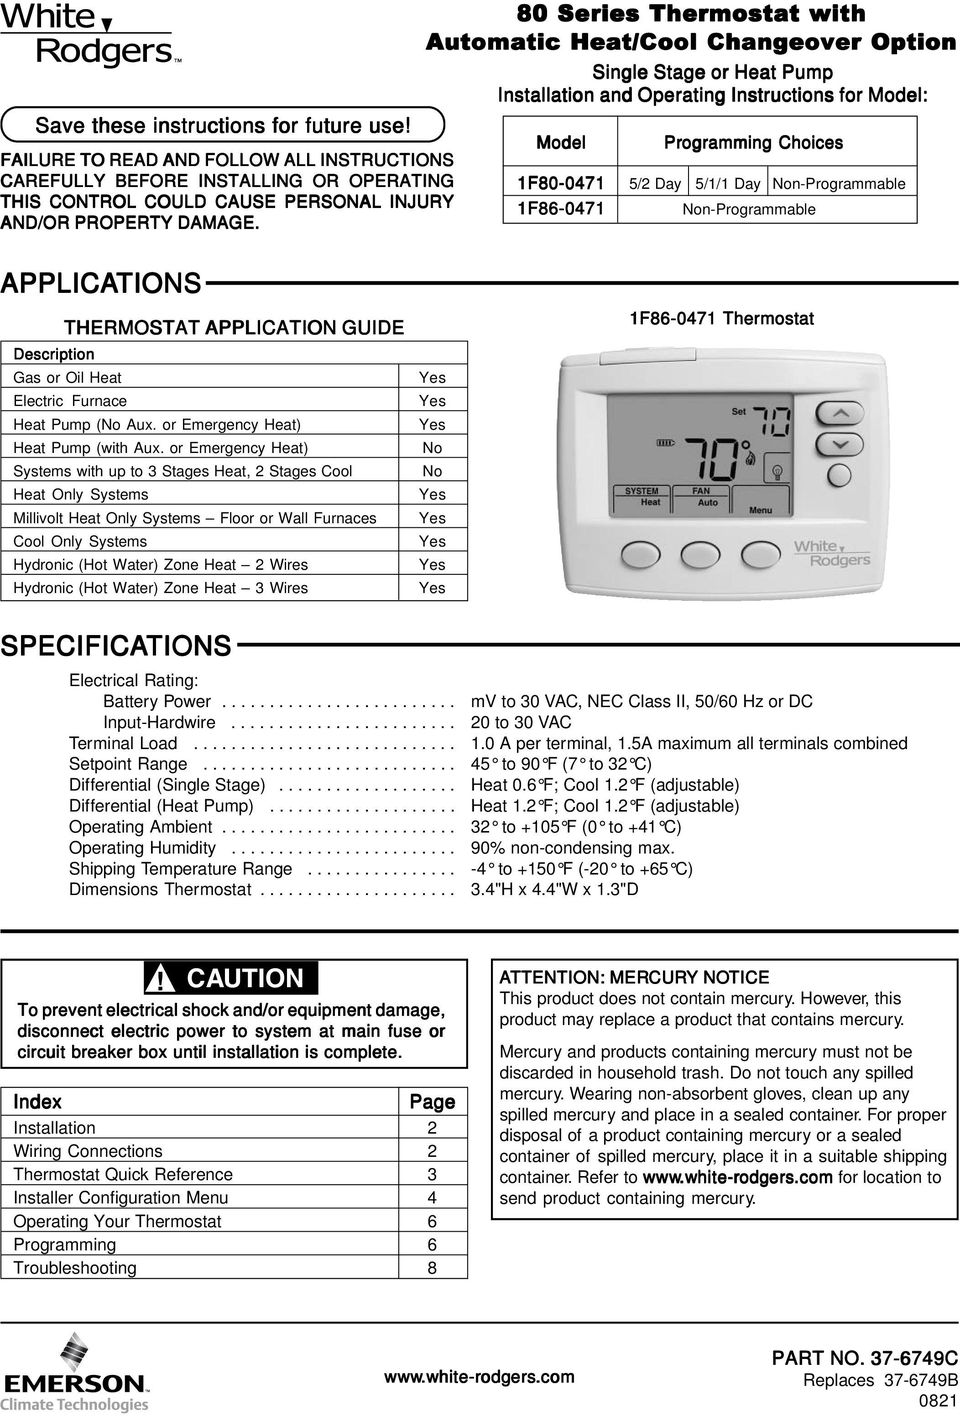 1F86-0471 Non-Programmable AND/OR PROPERTY DAMAGE. APPLICATIONS THERMOSTAT APPLICATION GUIDE Description Gas or Oil Heat Electric Furnace Heat Pump (No Aux. or Emergency Heat) Heat Pump (with Aux.